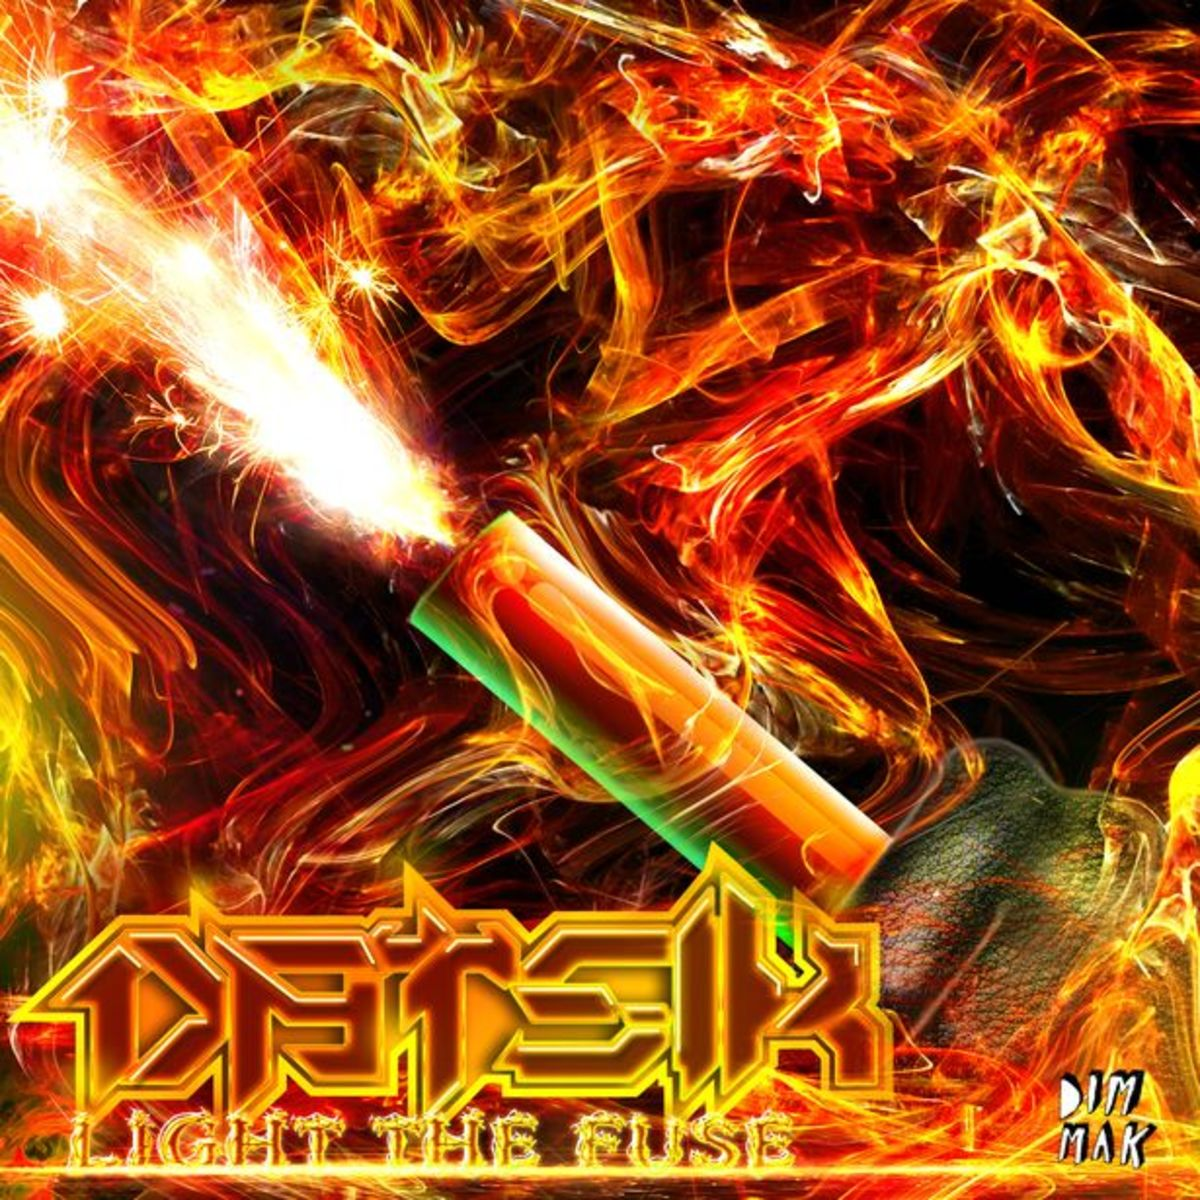 """EDM Download: Terravita's Remix Of Datsik's """"Light The Fuse""""; File Under """"Heavy On The Bass"""""""